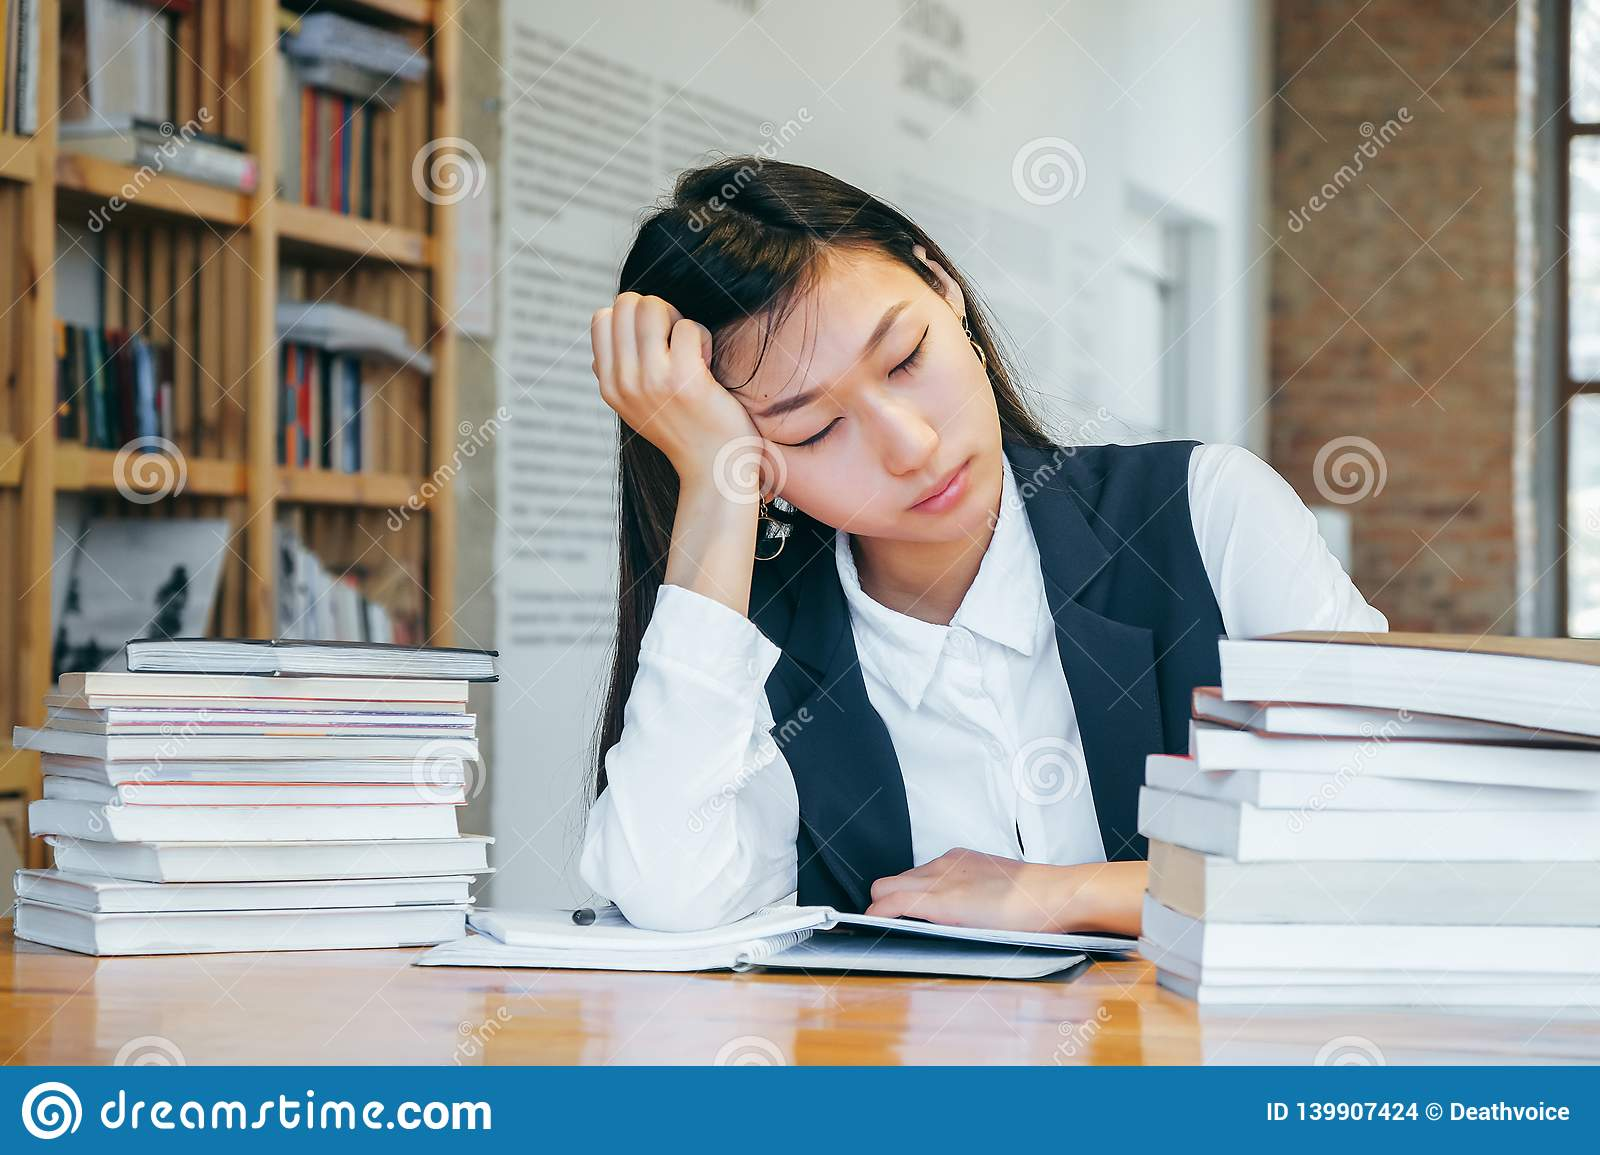 Cute Asian girl sitting in the library, surrounded by books, resting from school. A teenage student prepares for exams, takes